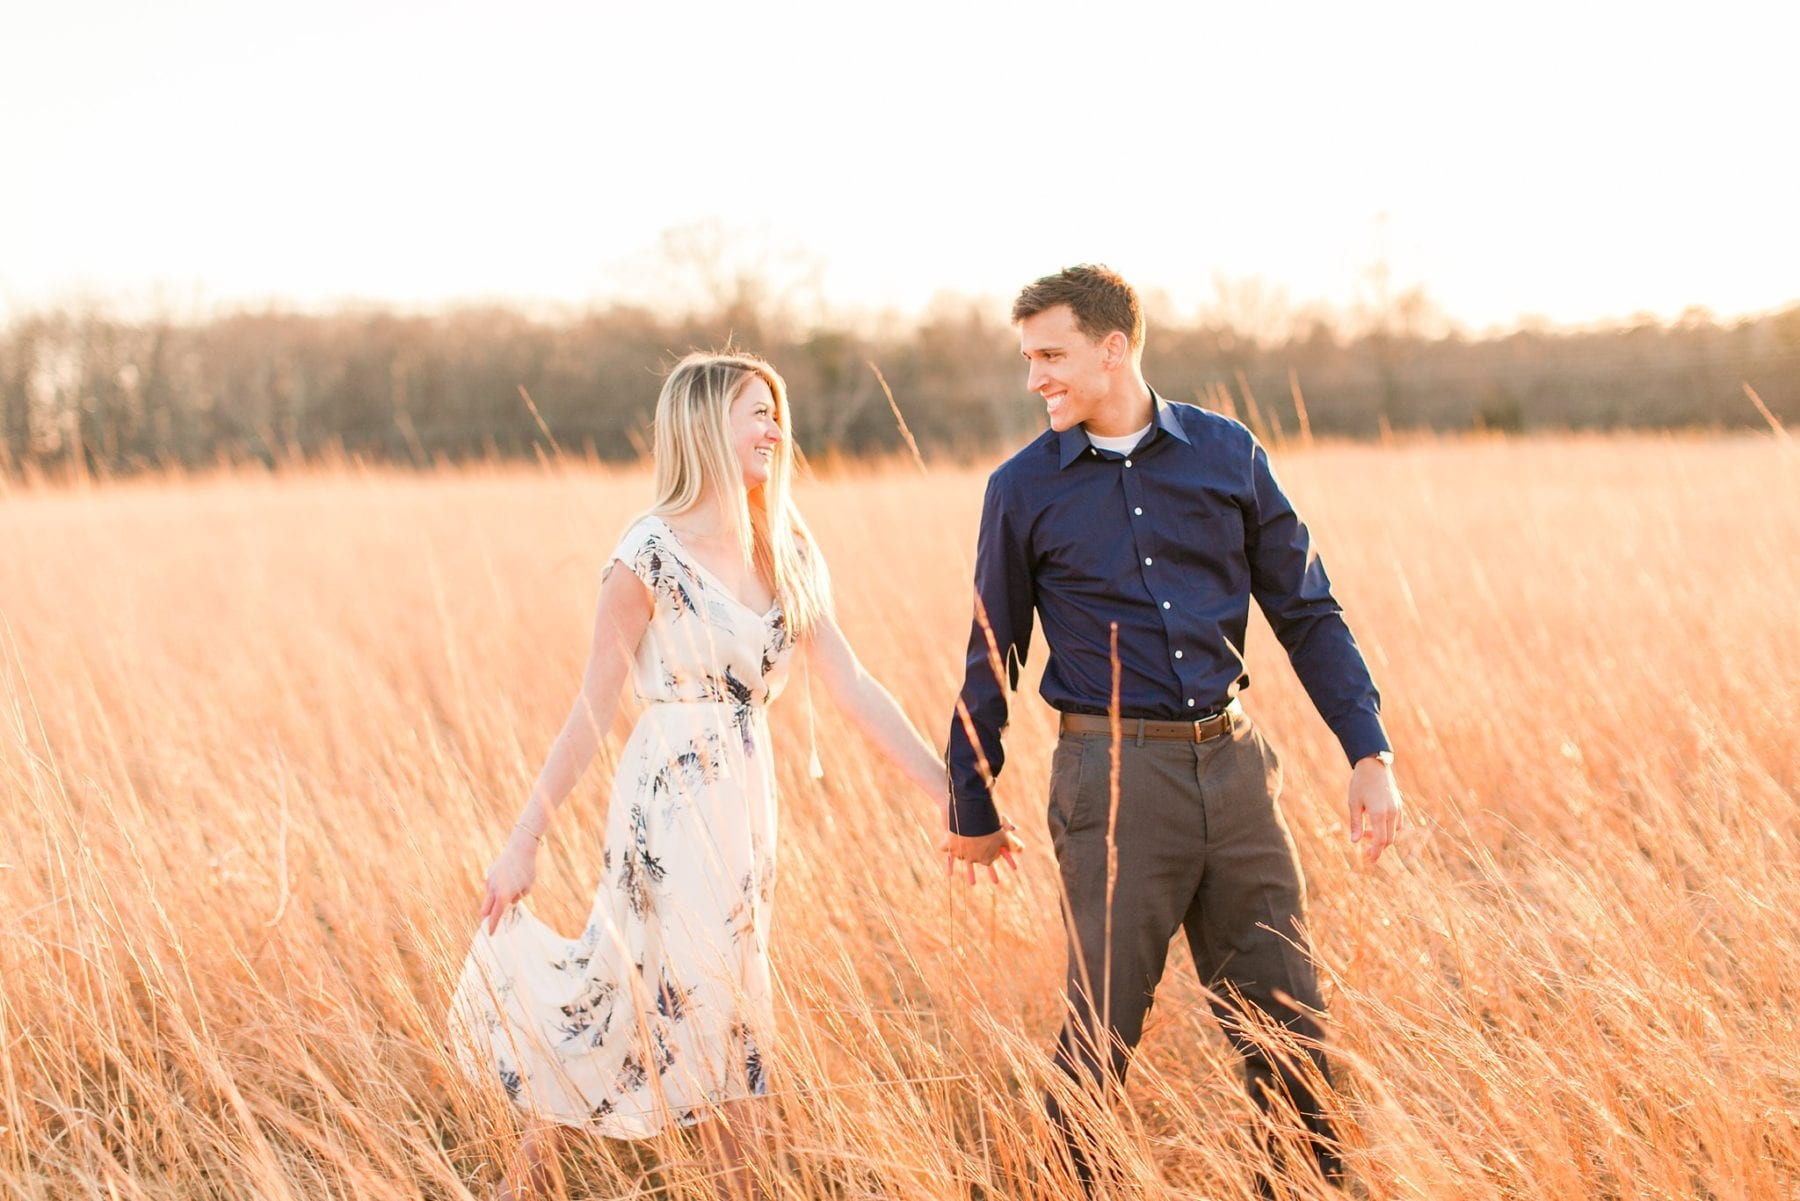 Manassas Battlefield Engagement Session Virginia Wedding Photographer Danielle & Charlie Megan Kelsey Photography-6048.jpg